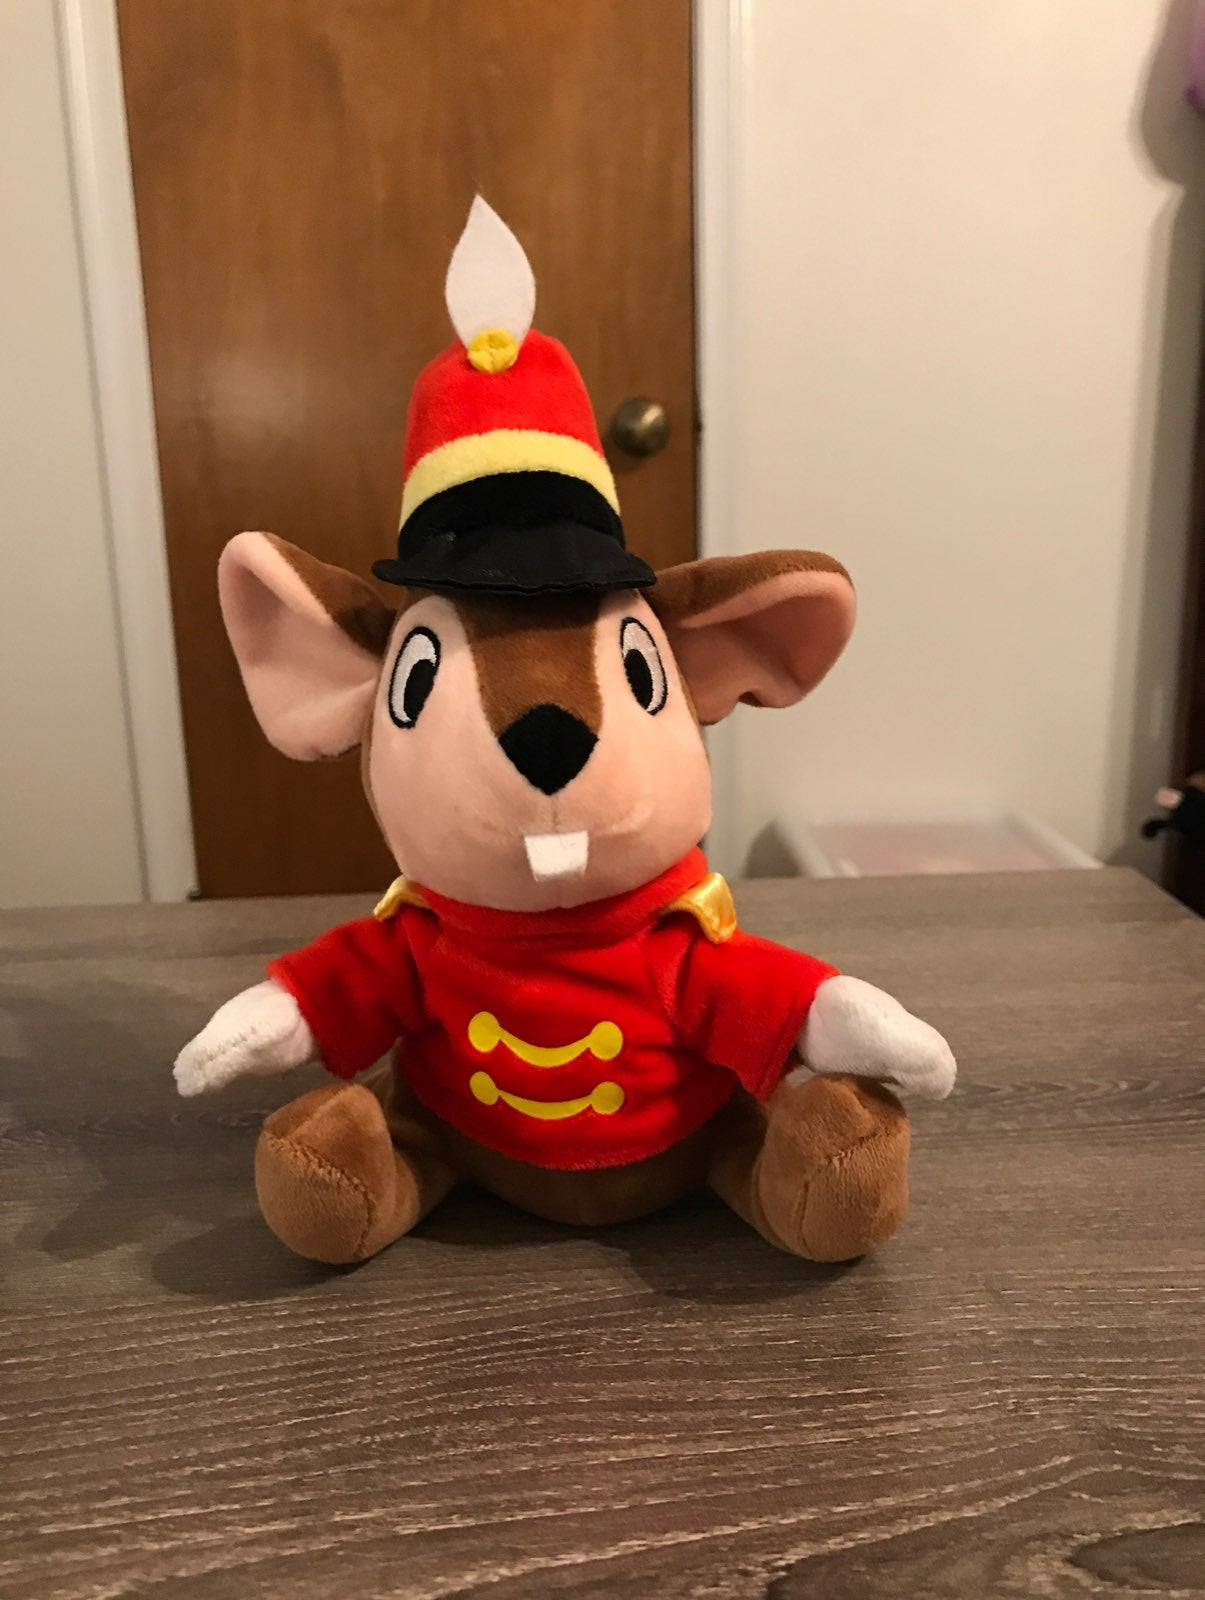 Dumbo- Timothy mouse plush